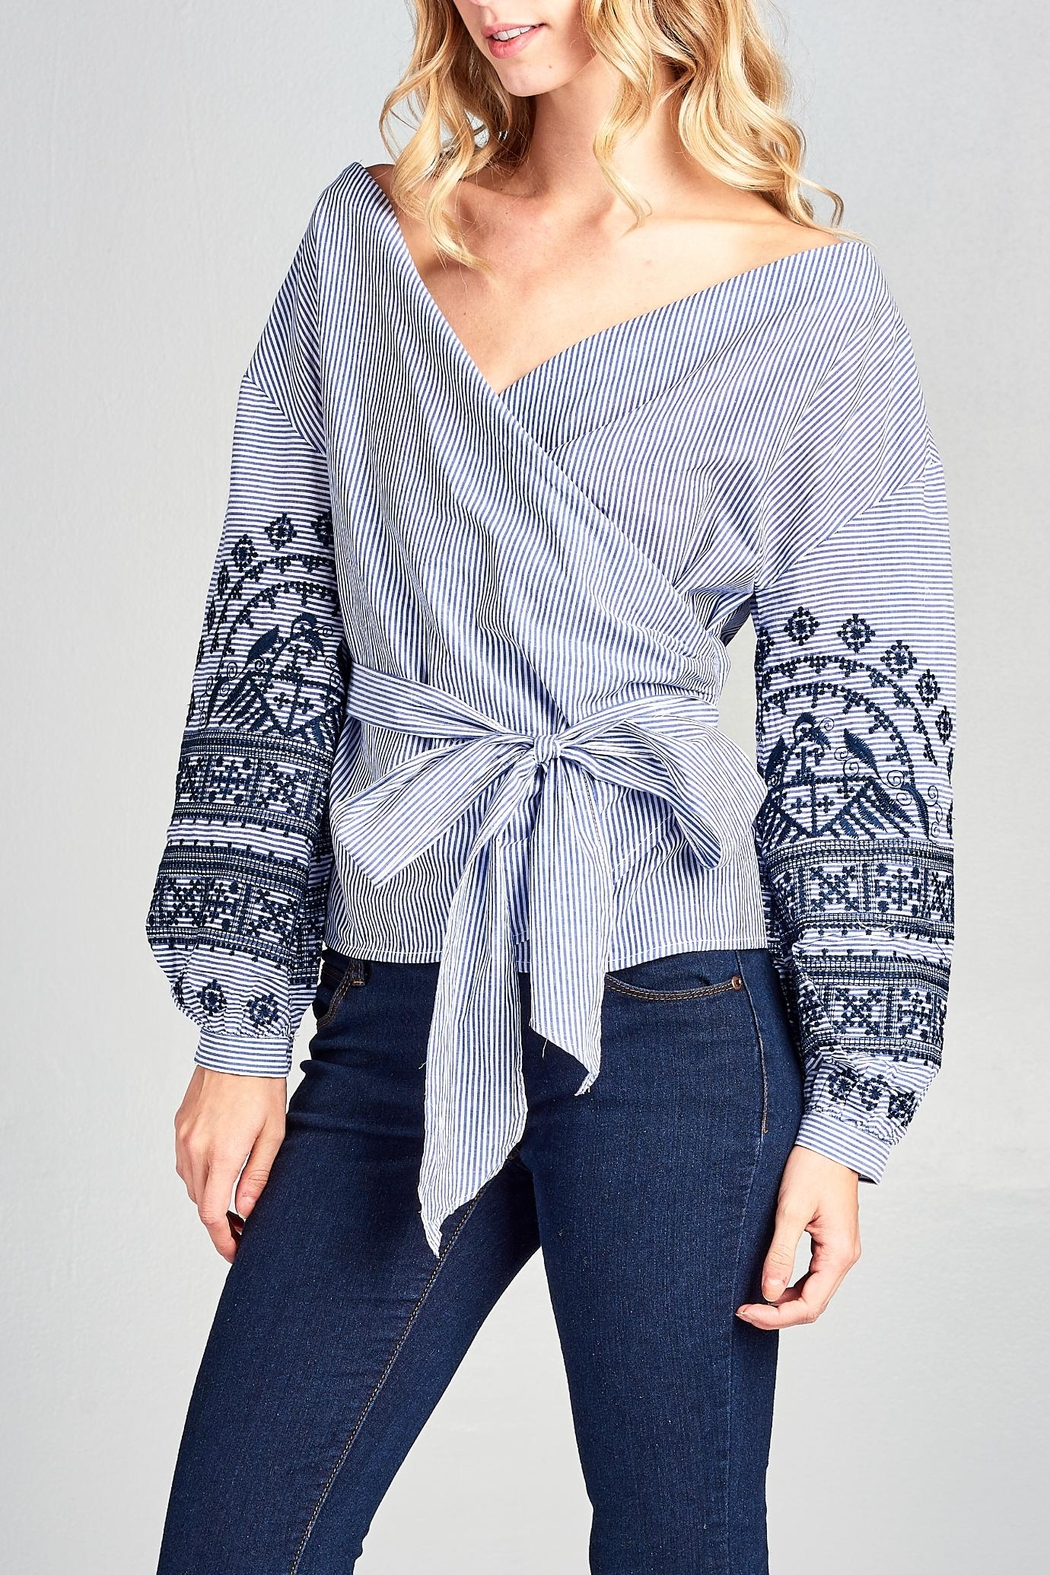 Racine Stripe Embroidered Top - Front Full Image